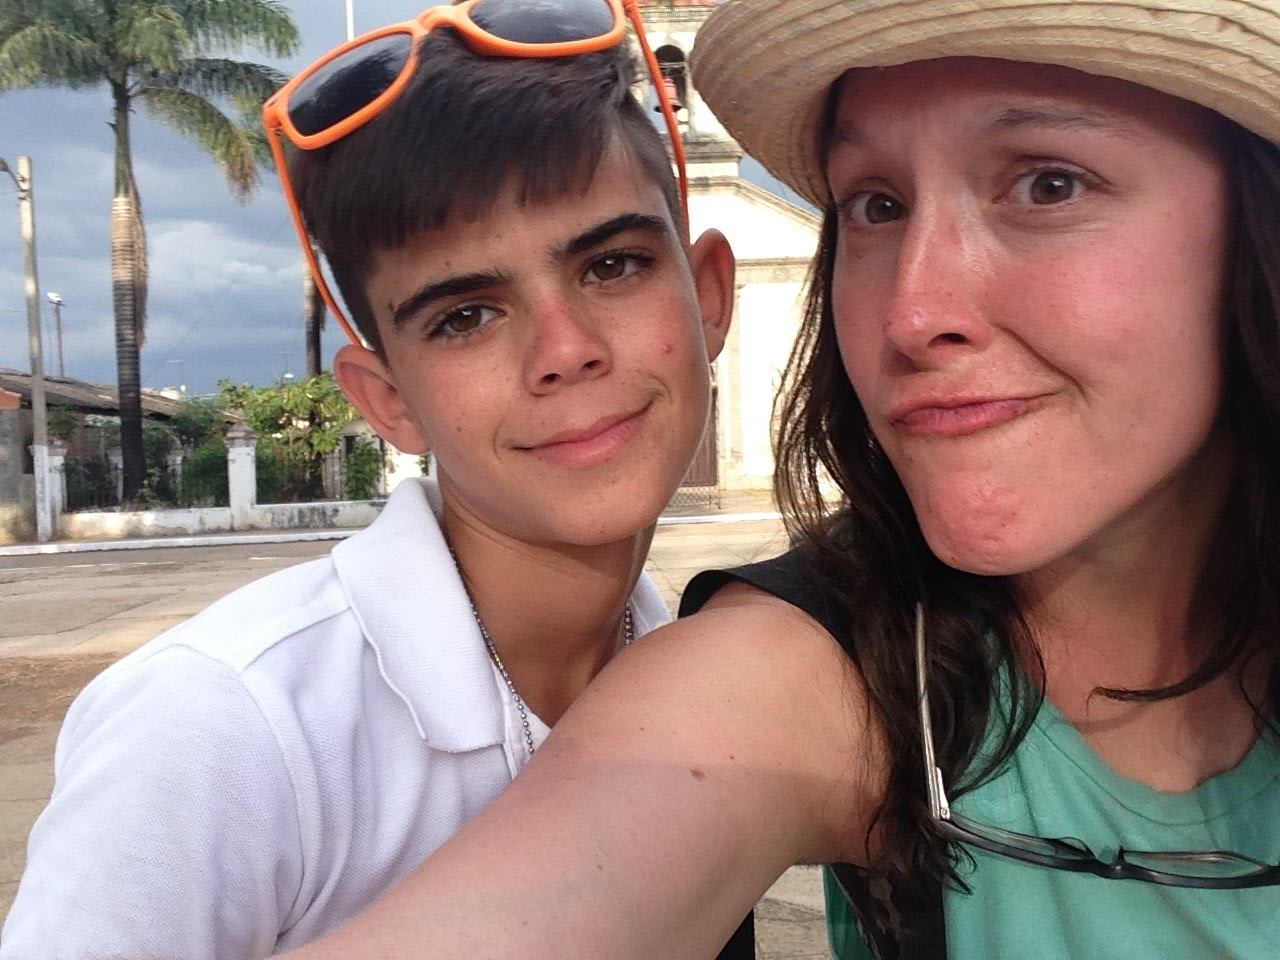 Ashleigh Tatarcyk (R) with a Cuban student